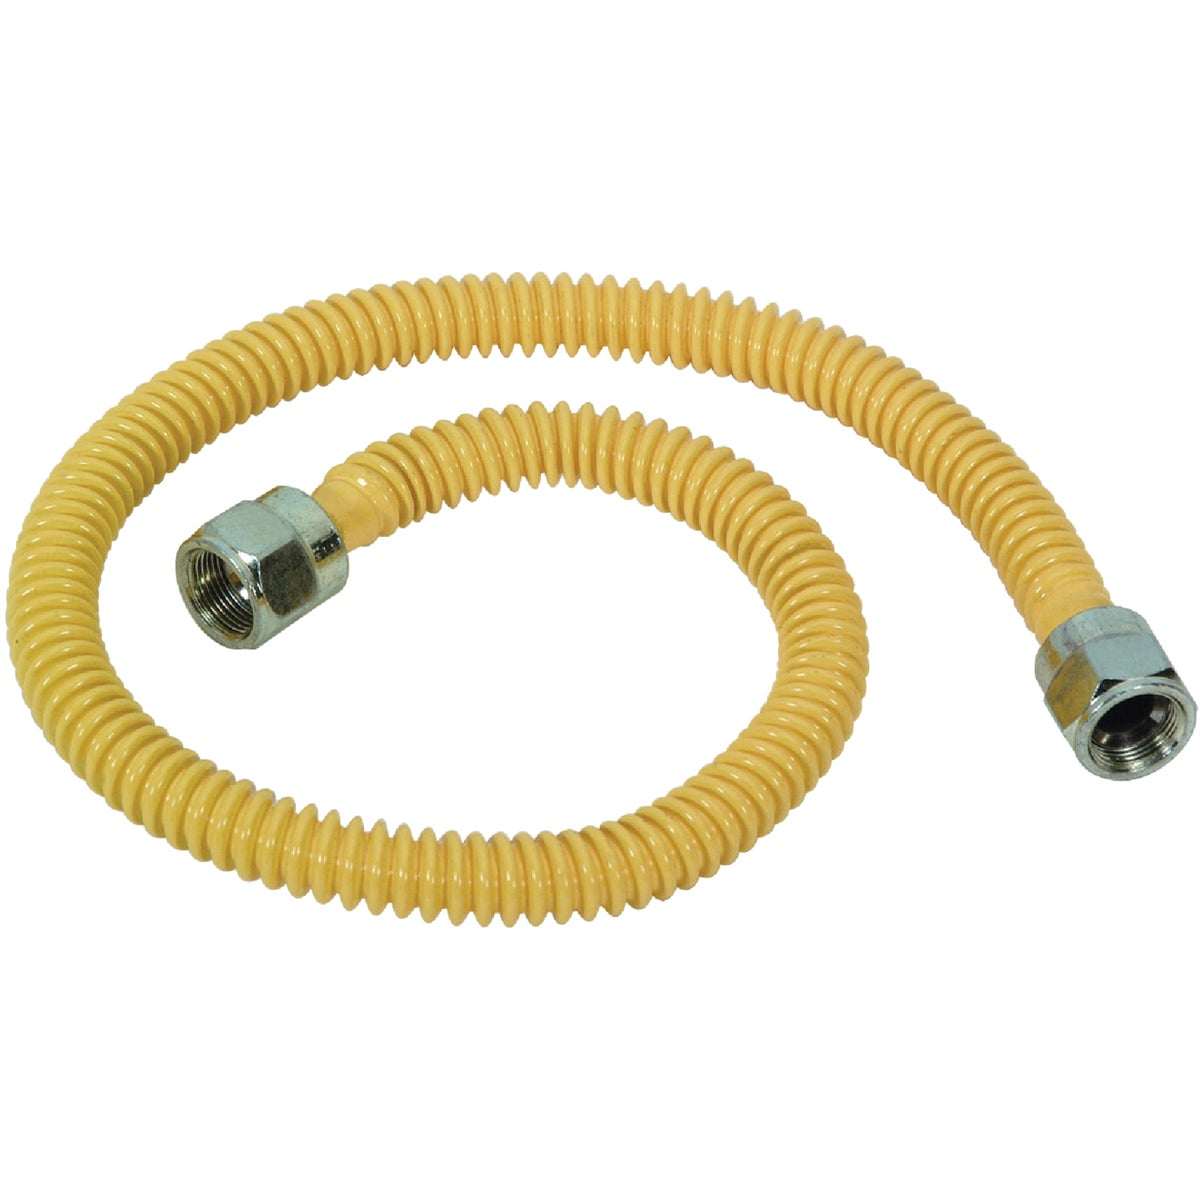 "3/8"" GAS CONNECTOR - CSSTNN-16N by Brass Craft"